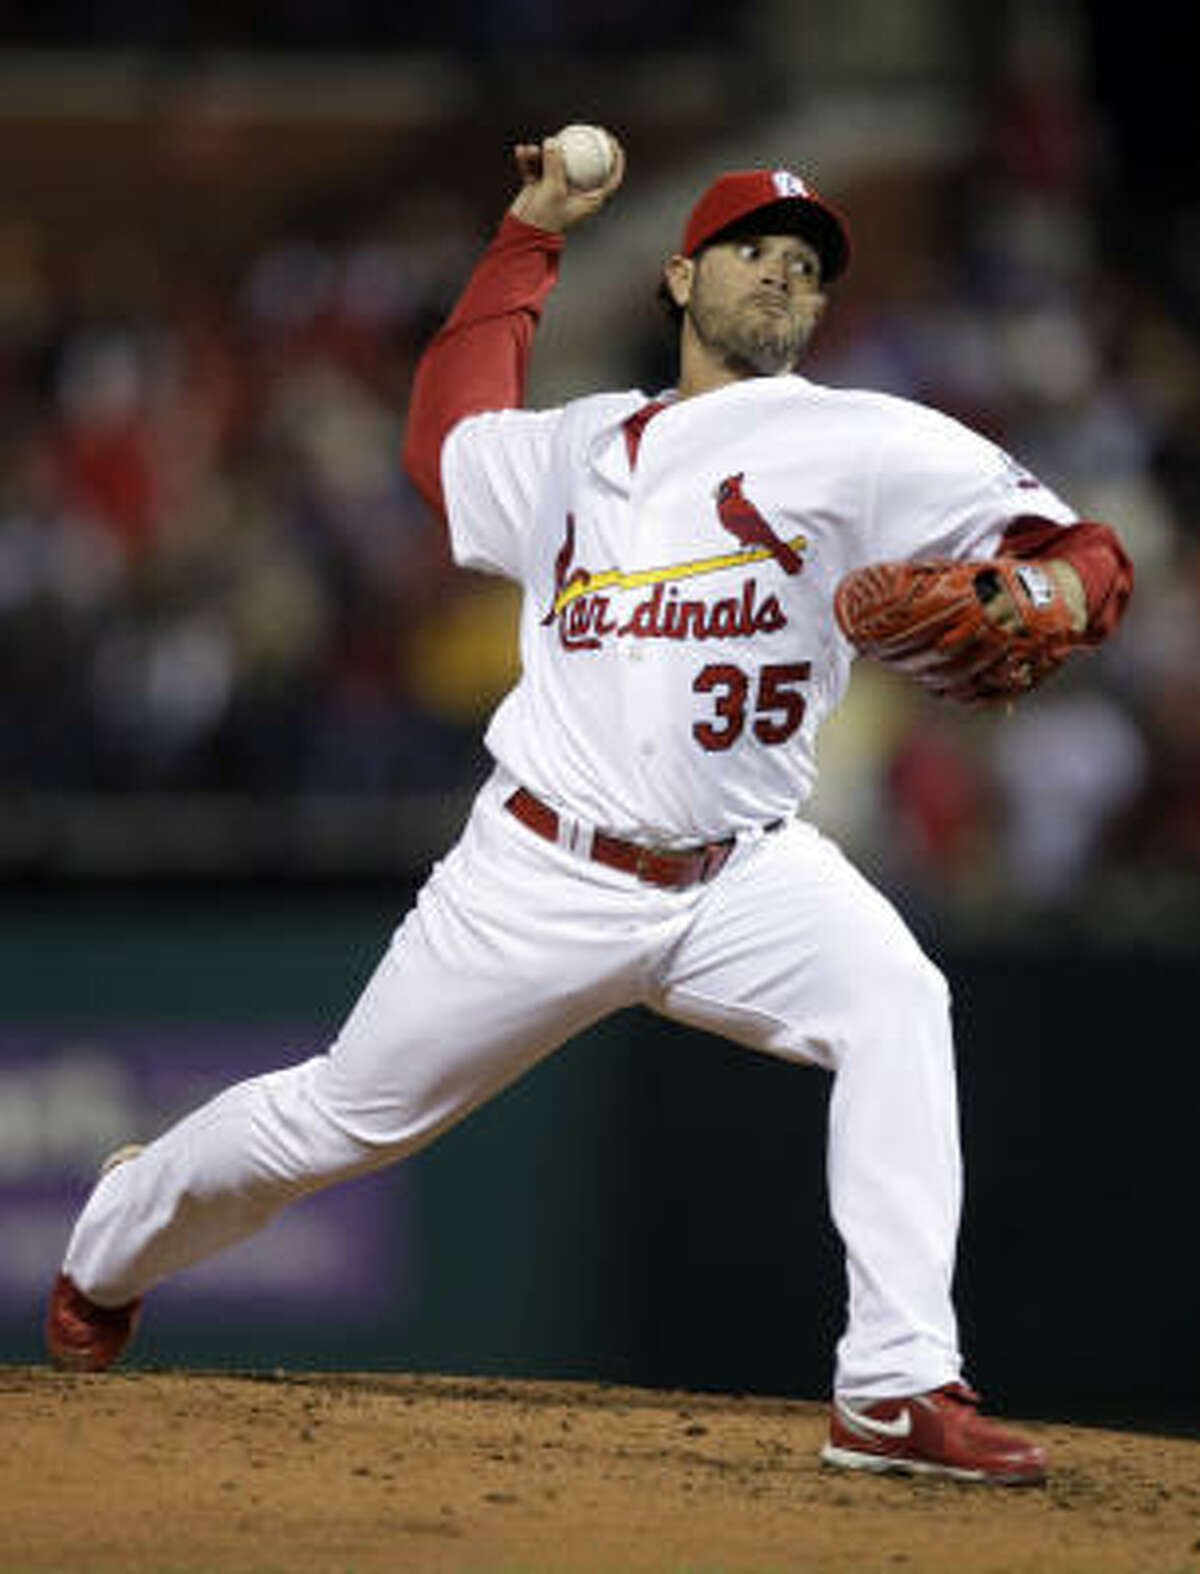 St. Louis Cardinals starting pitcher Joel Pineiro started against the Astros.